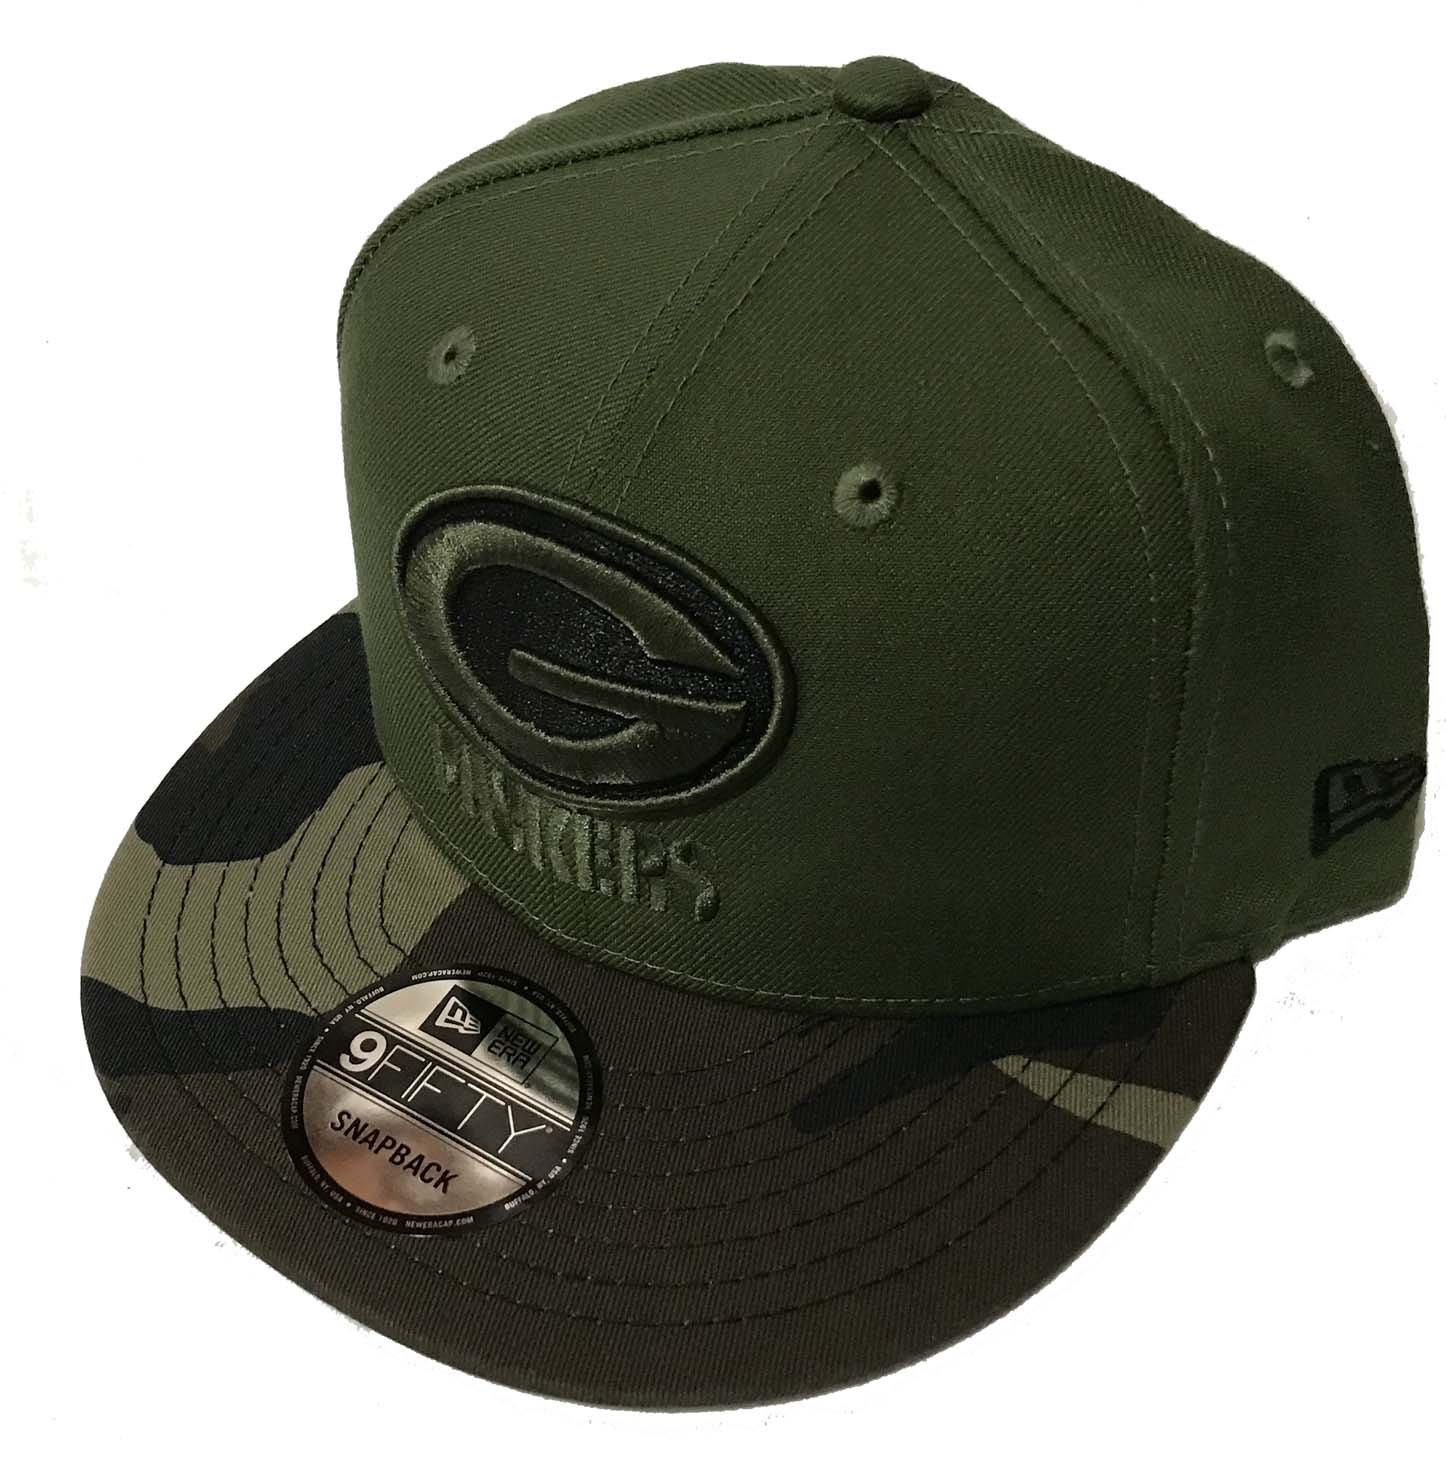 AuthenticグリーンベイPackers Salute to Service Limited Exclusive 9 Fiftyスナップバックキャップ   B07BFRNV6D